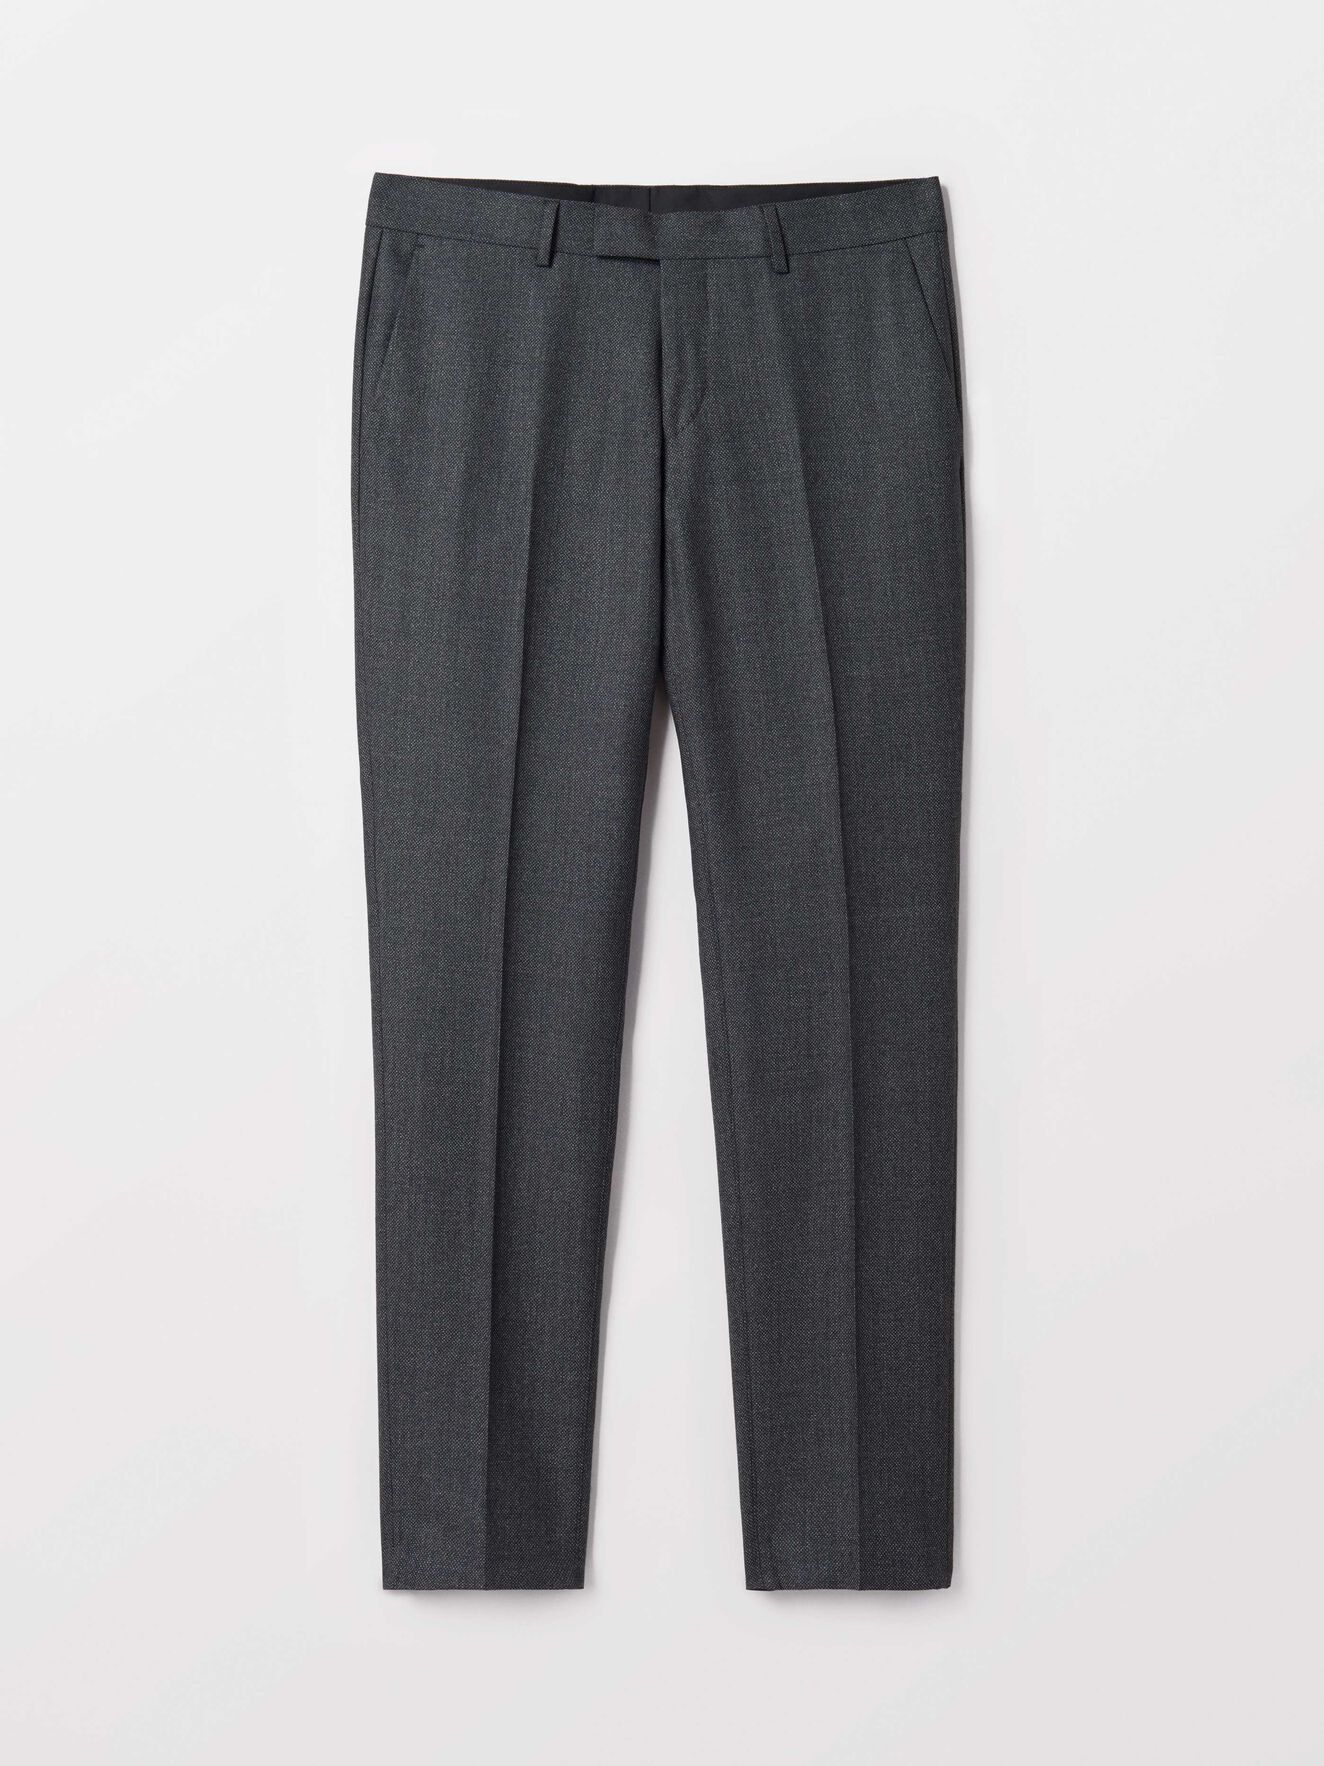 Tordon Trousers in Med Grey Mel from Tiger of Sweden